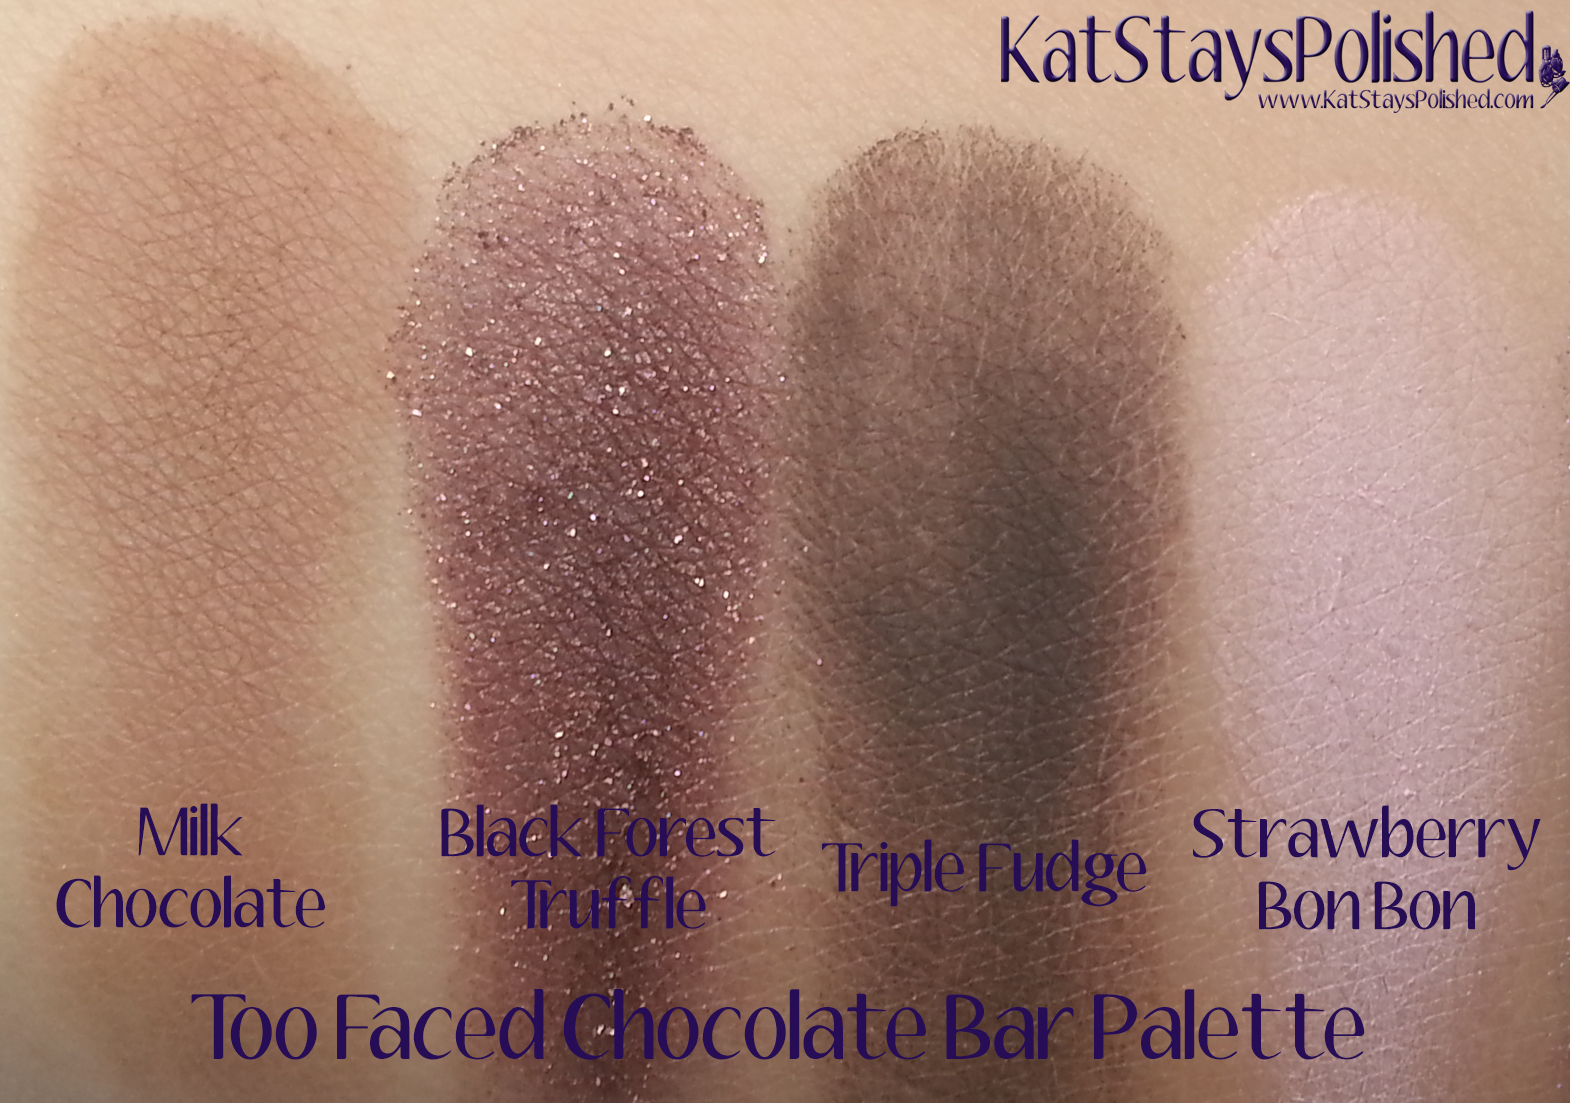 Too Faced Chocolate Bar Palette | Kat Stays Polished